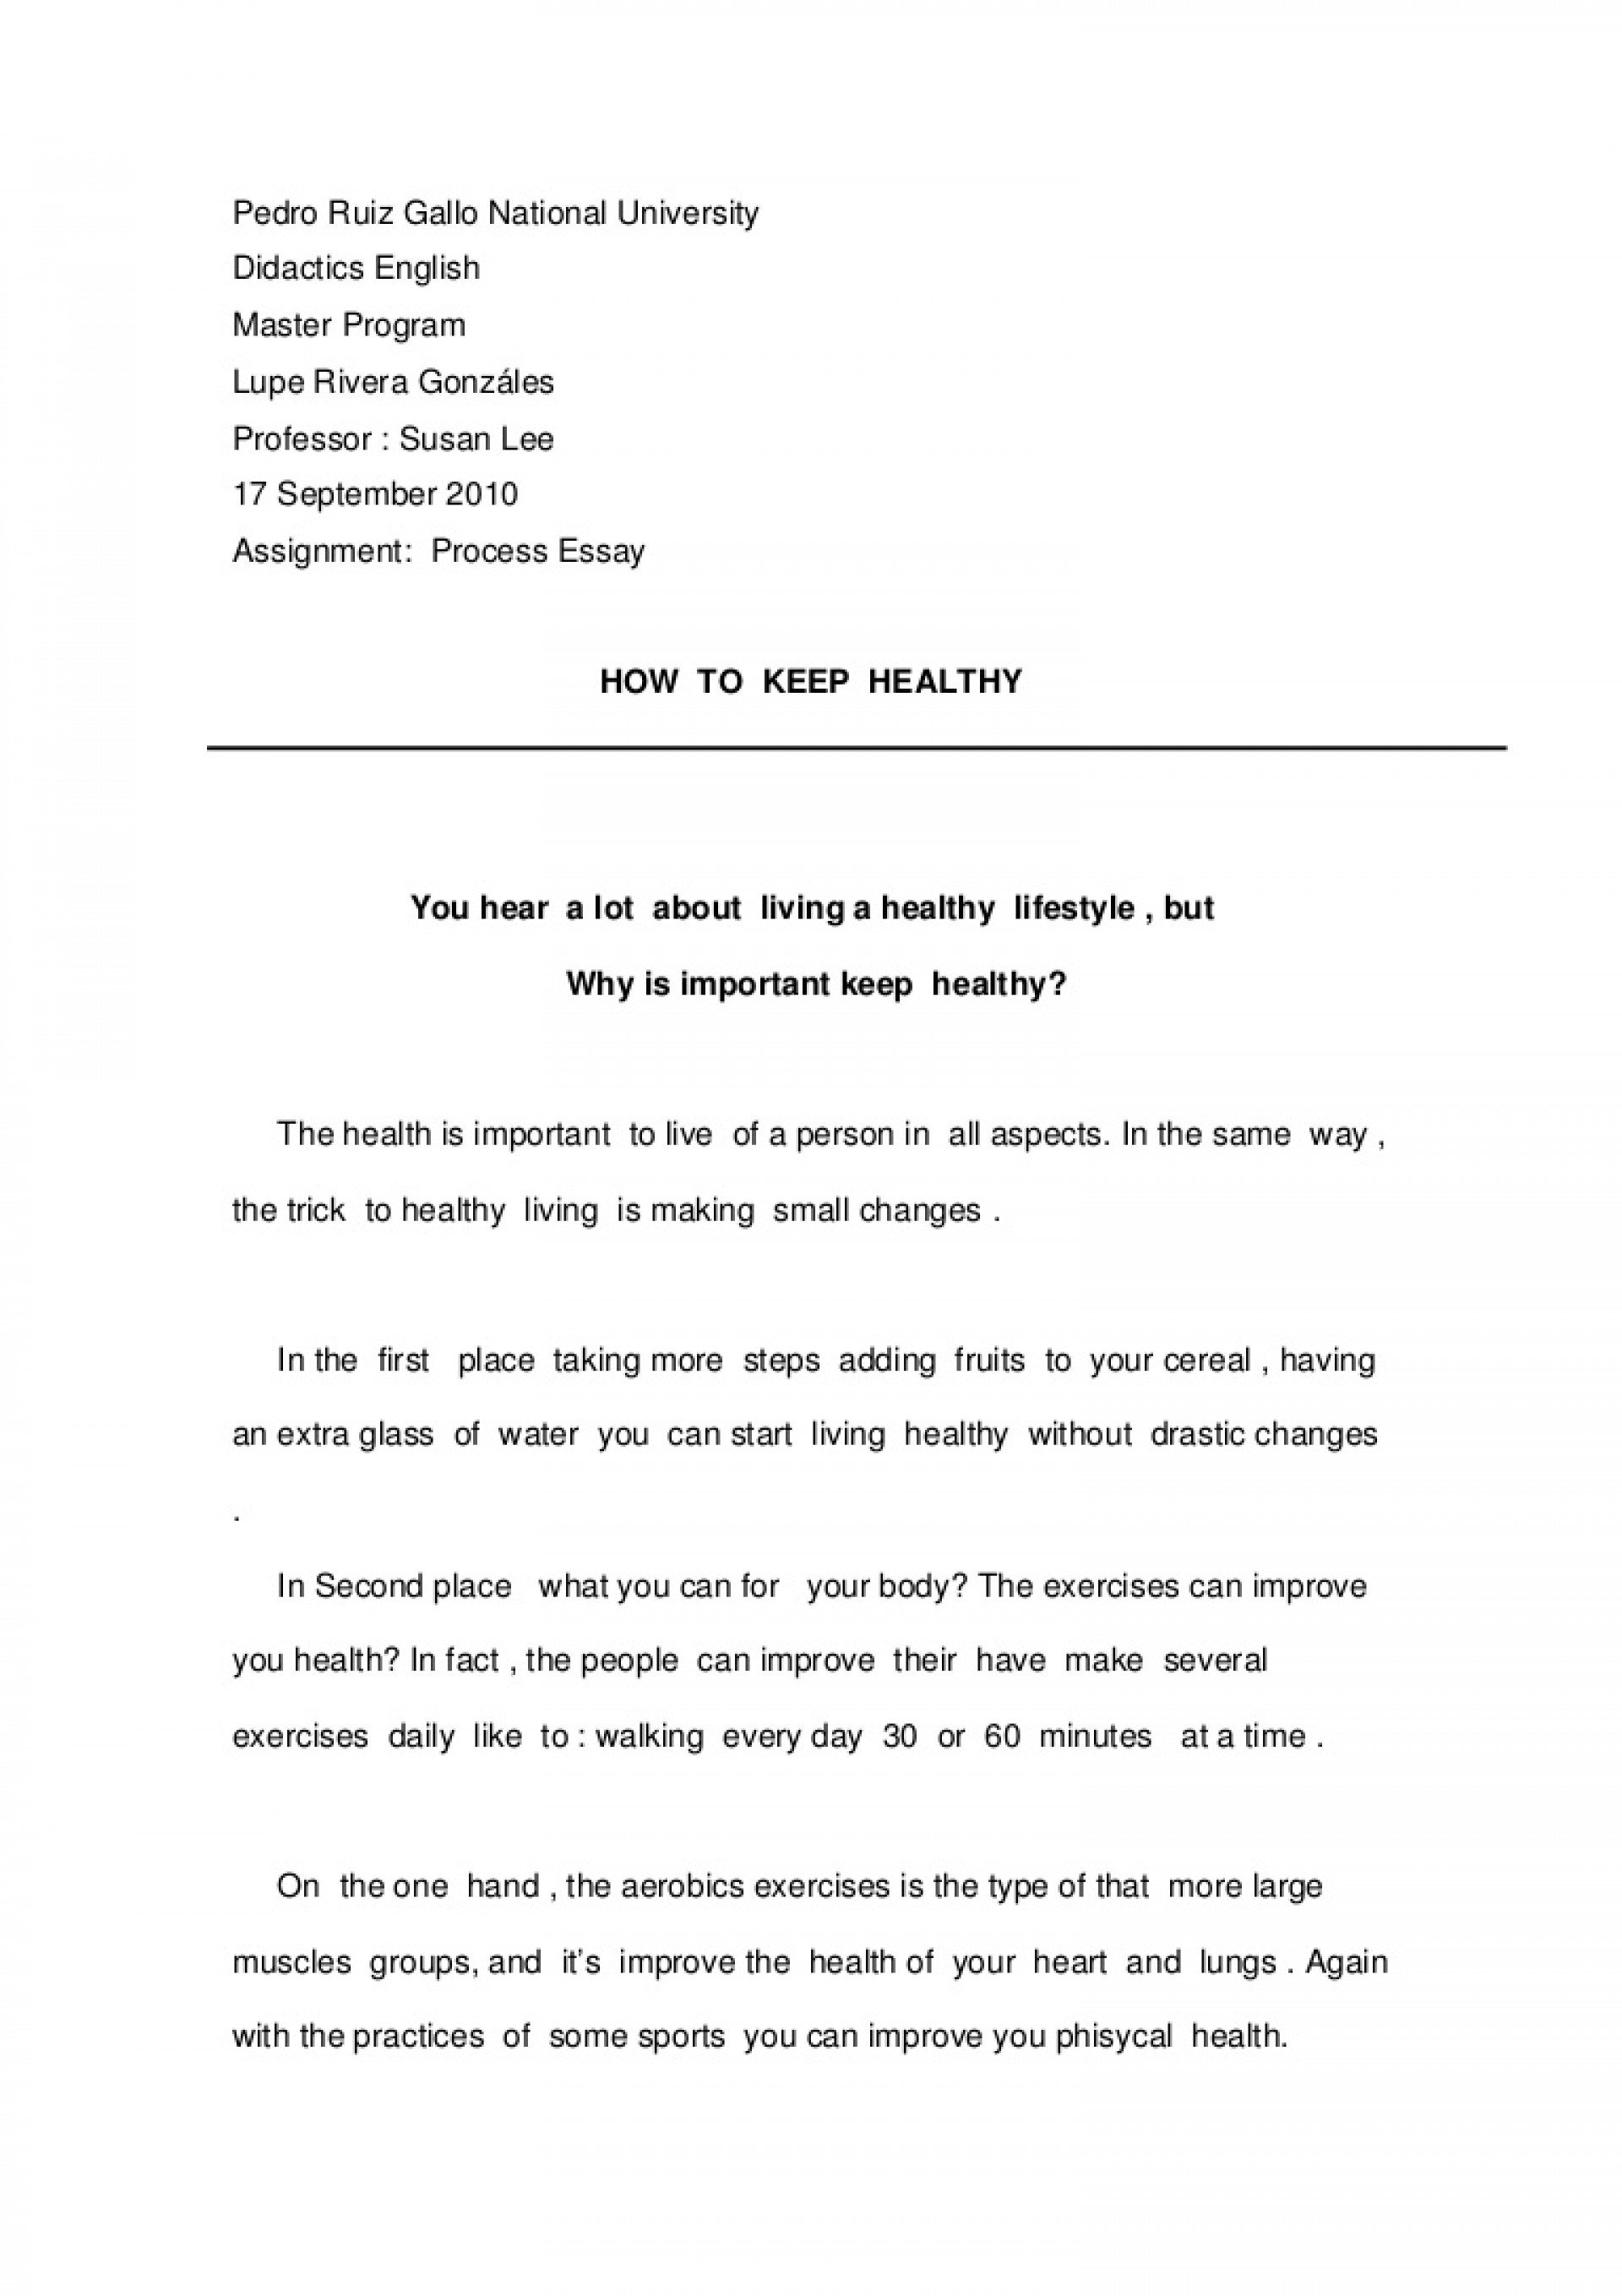 018 Essayhowtokeephealthy Phpapp02 Thumbnail Essay On Regular Exercise Impressive Physical In 200 Words For Class 4 Hindi 1920